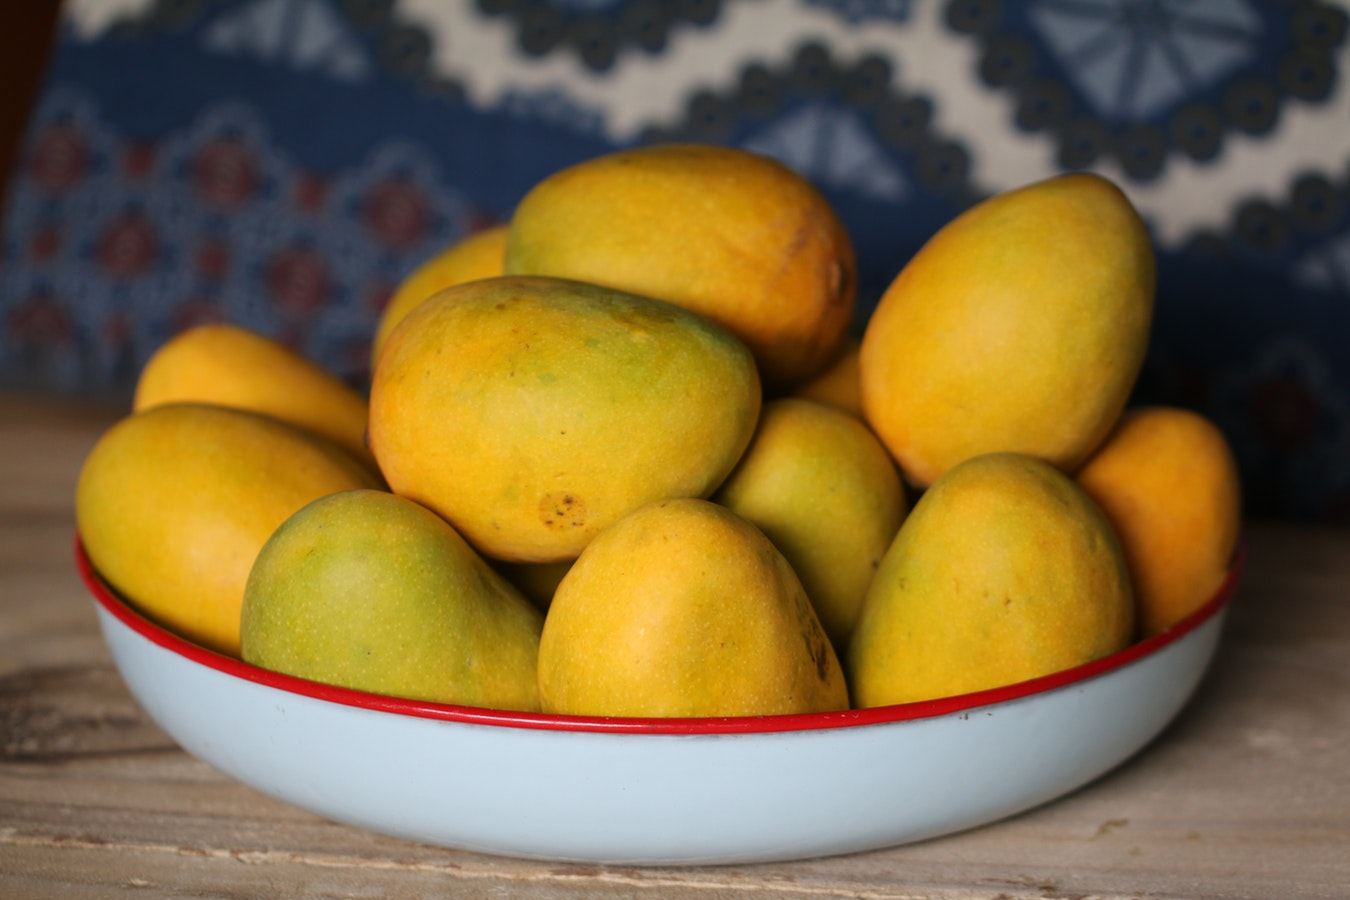 bowl of mangoes on table